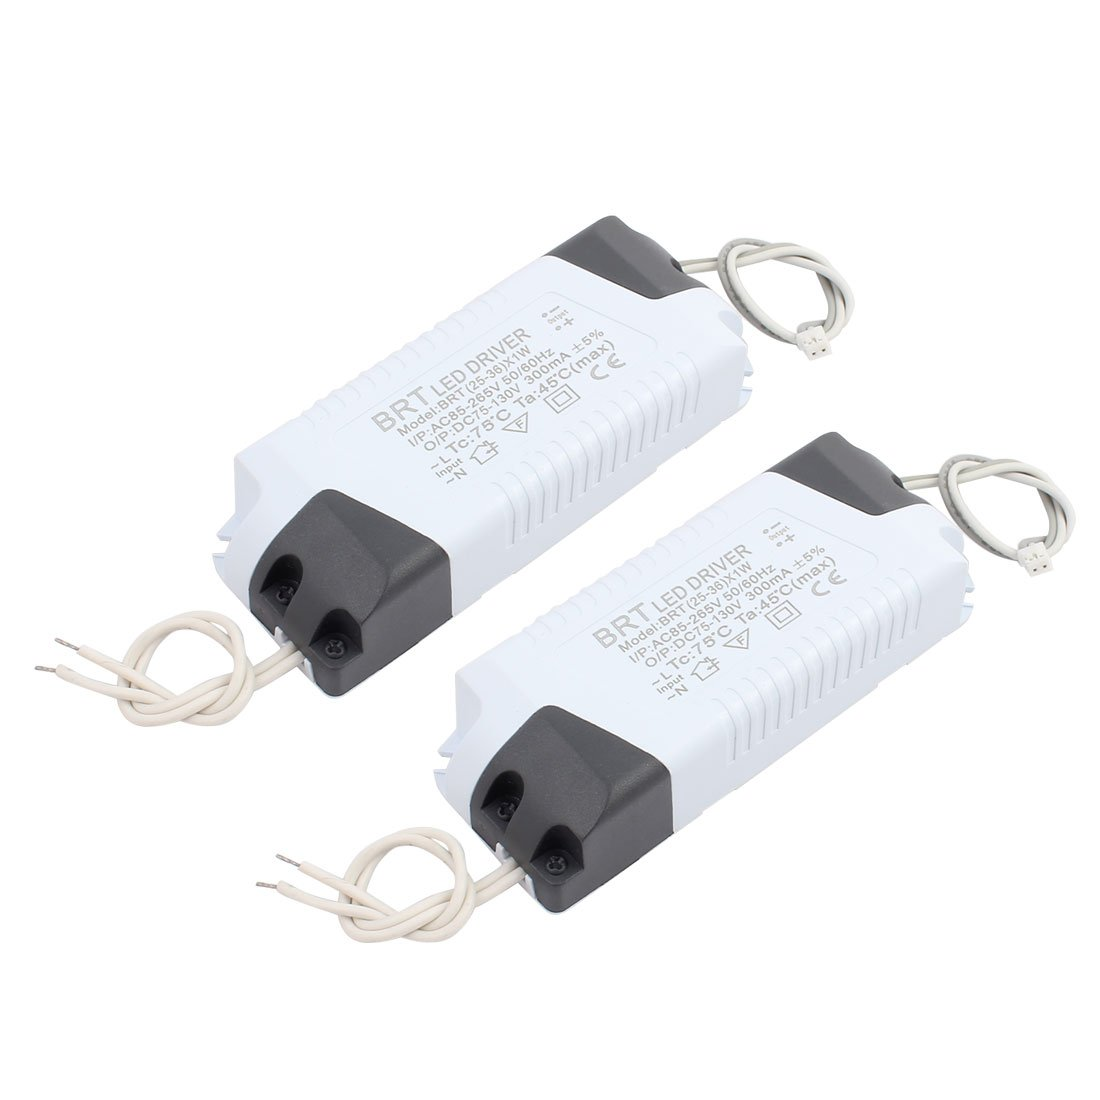 uxcell 25-36 x 1W Small Terminal Connector Advanced Plastic Shell LED Driver Power Supply 2Pcs